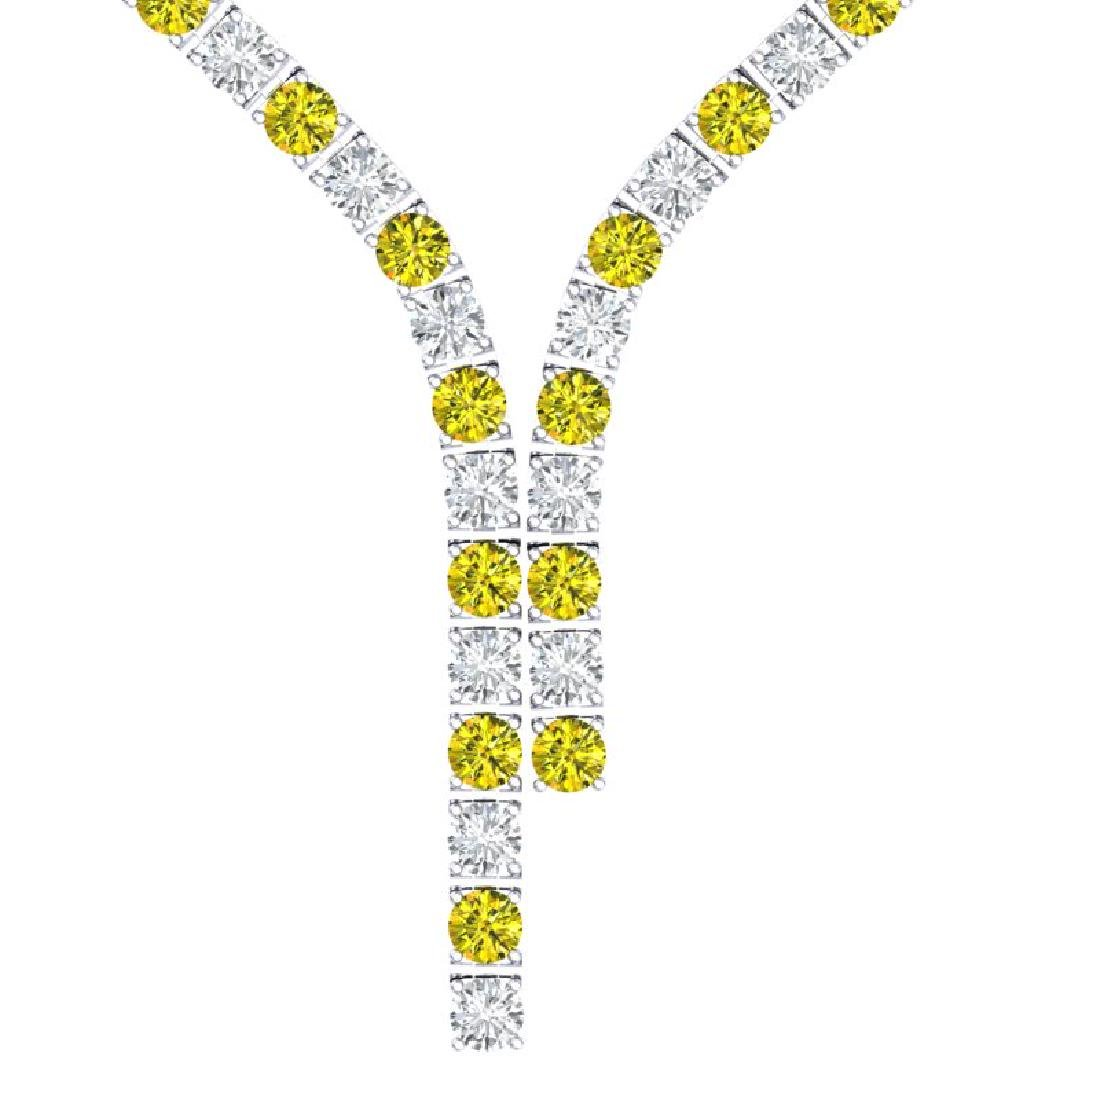 40 CTW SI/I Fancy Yellow & White Diamond Necklace 18K